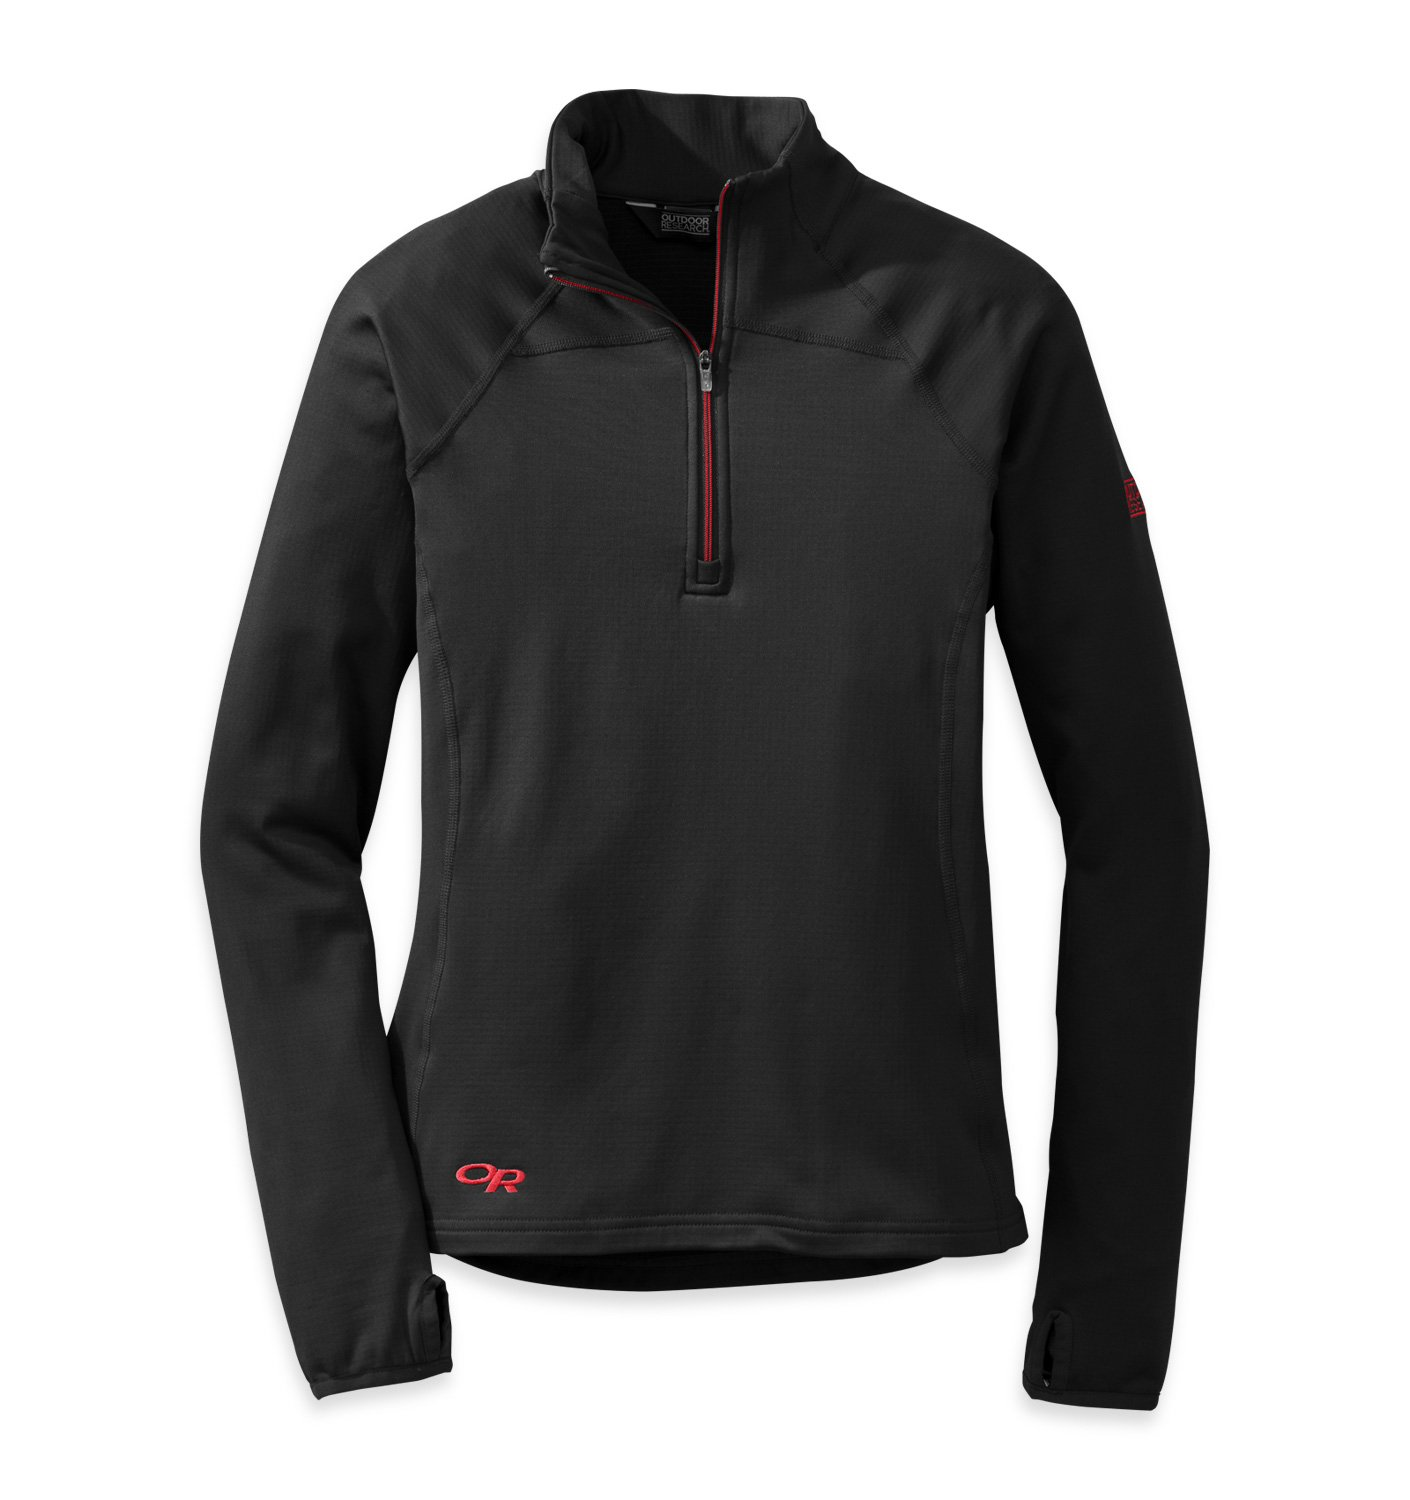 Outdoor Research Women's Radiant LT Zip Top, Black/Flame, Small by Outdoor Research